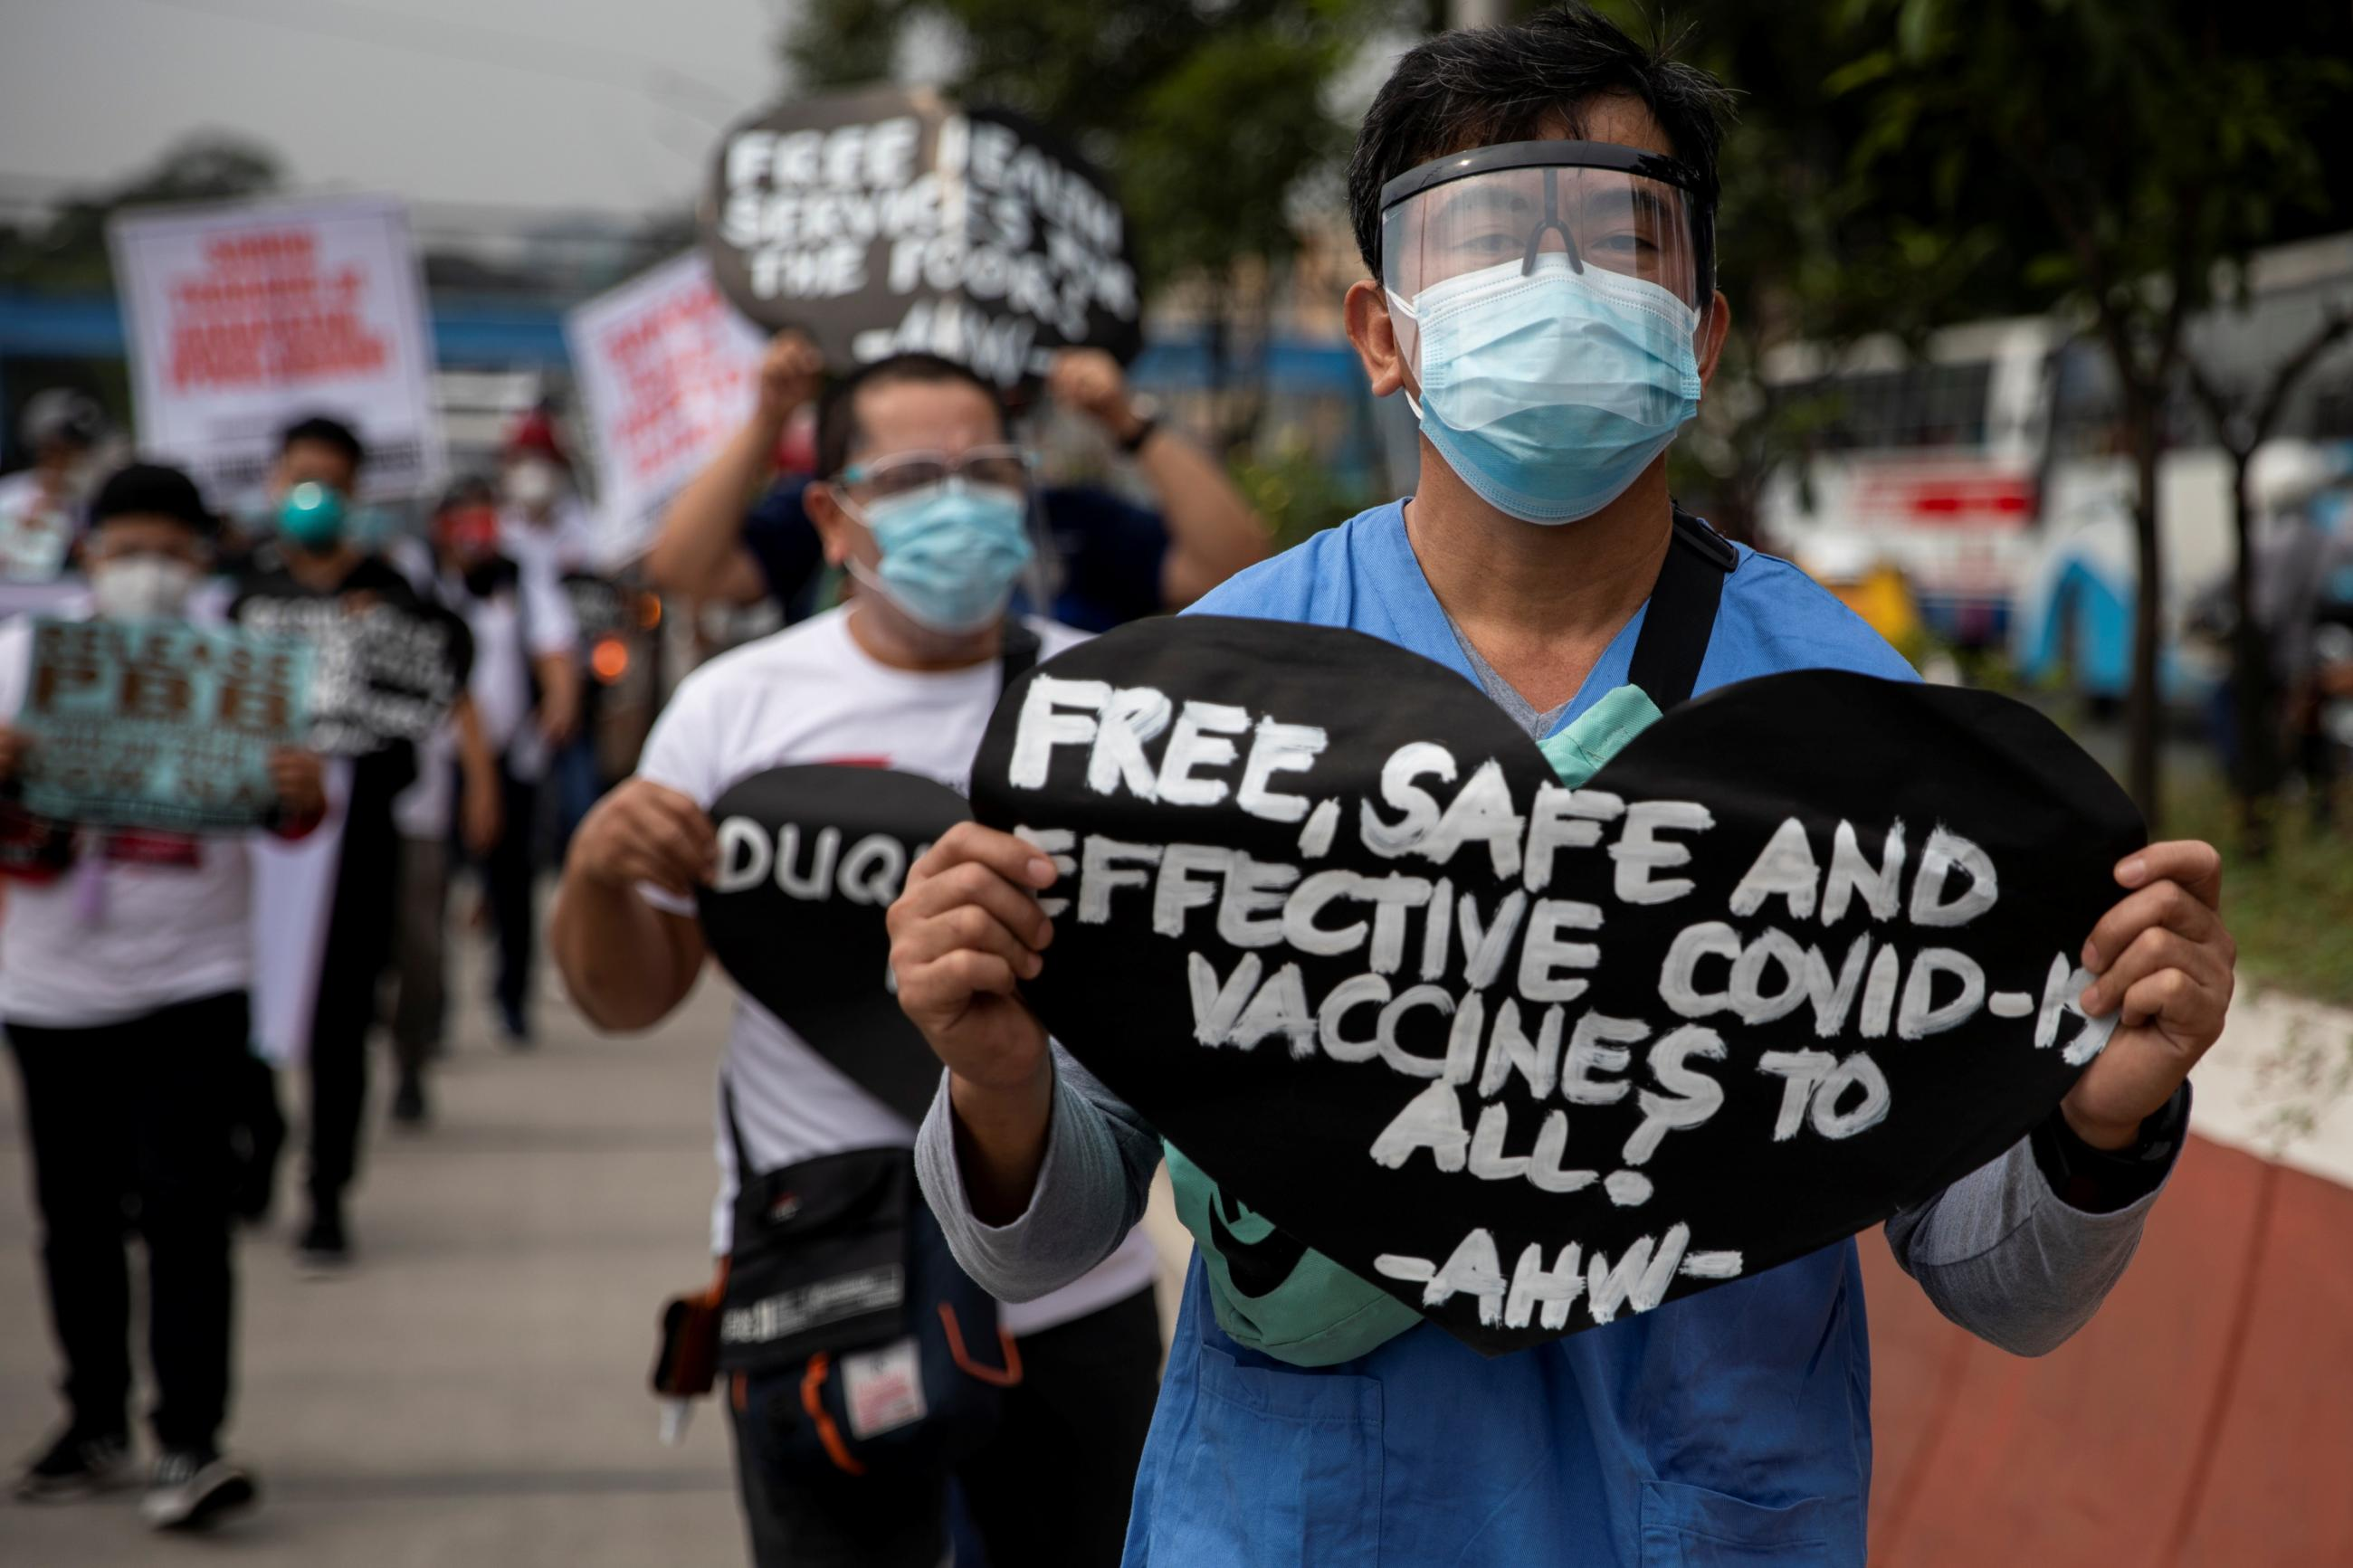 A health worker holds a placard calling for free, safe, and effective COVID-19 vaccines during a protest amid the coronavirus outbreak in Quezon City, Metro Manila, Philippines, February 15, 2021